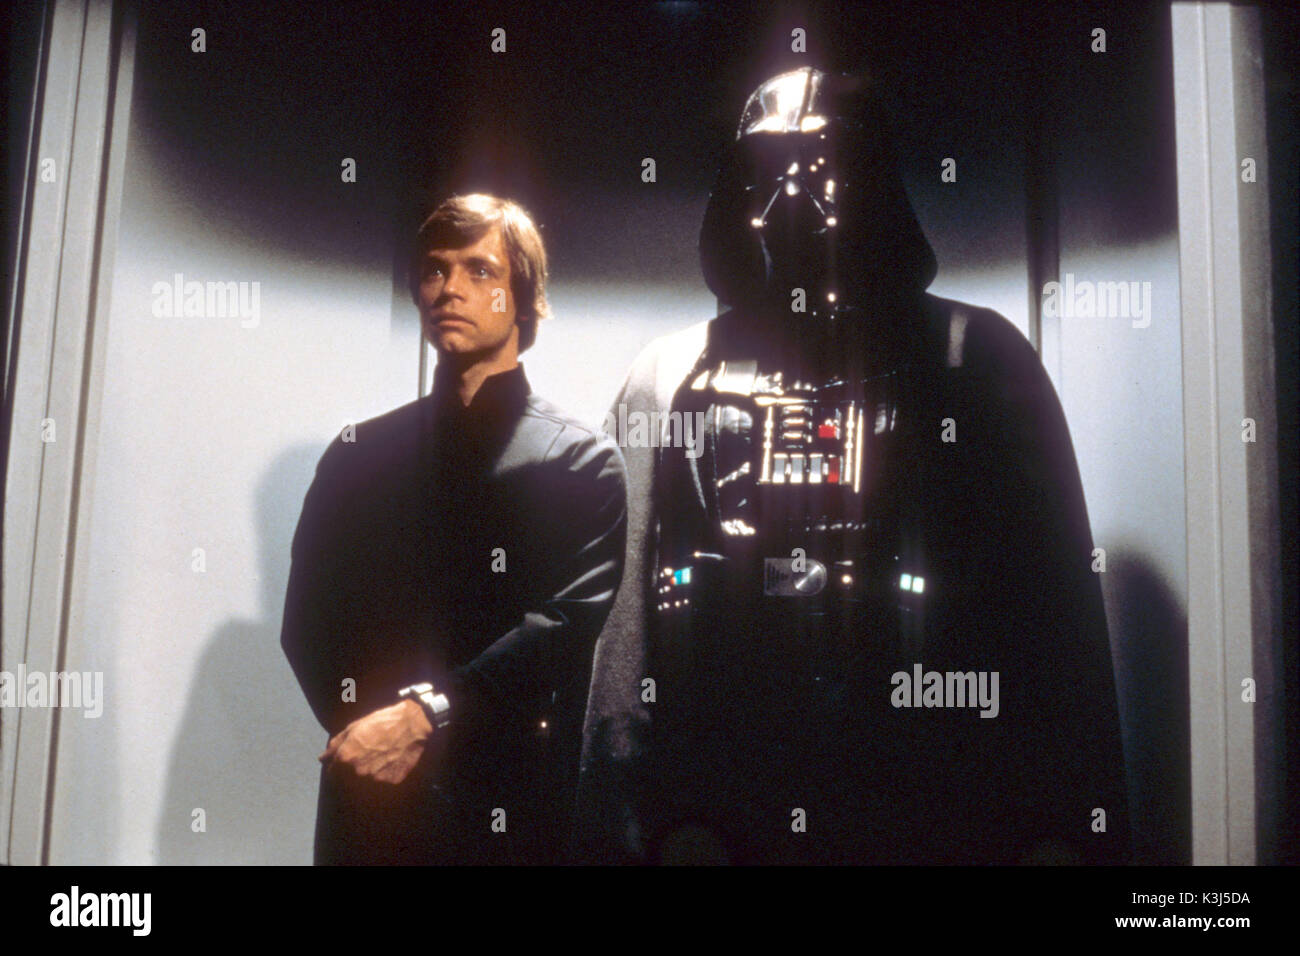 Luke Skywalker Darth Vader High Resolution Stock Photography And Images Alamy